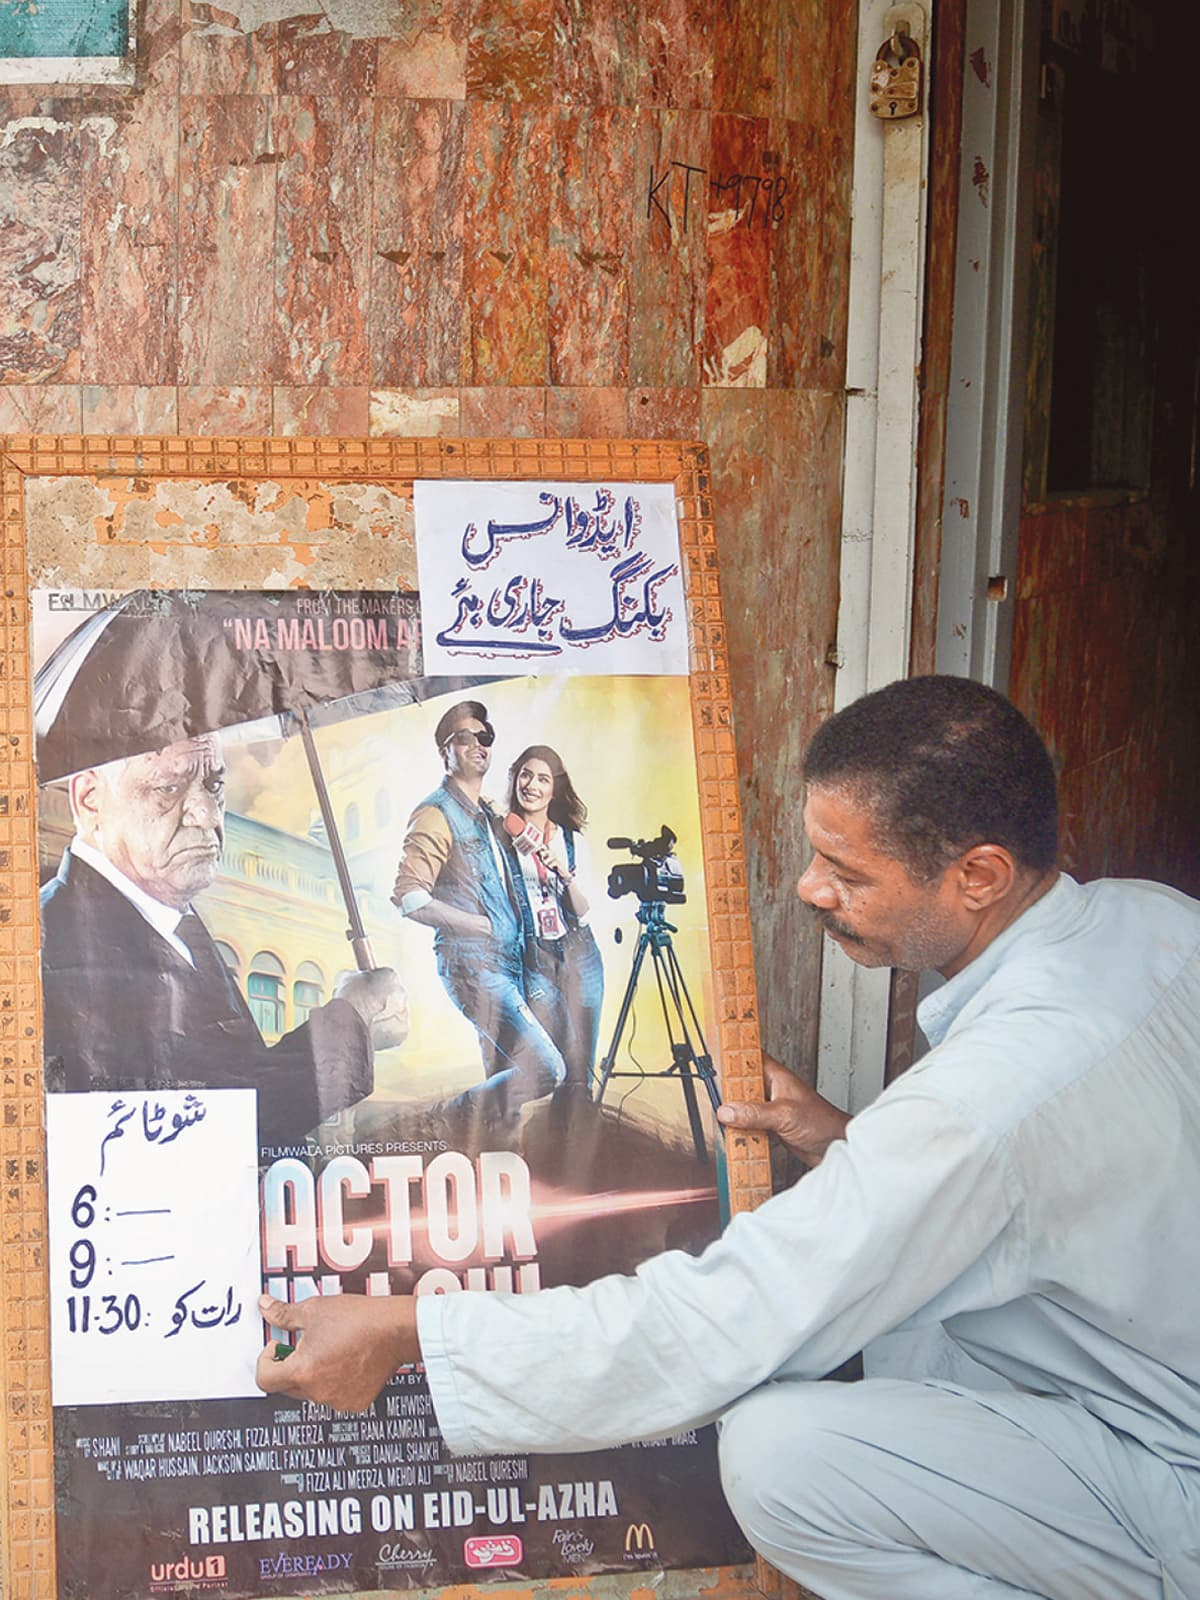 What makes the revival of Pakistani cinema an uphill task - Herald